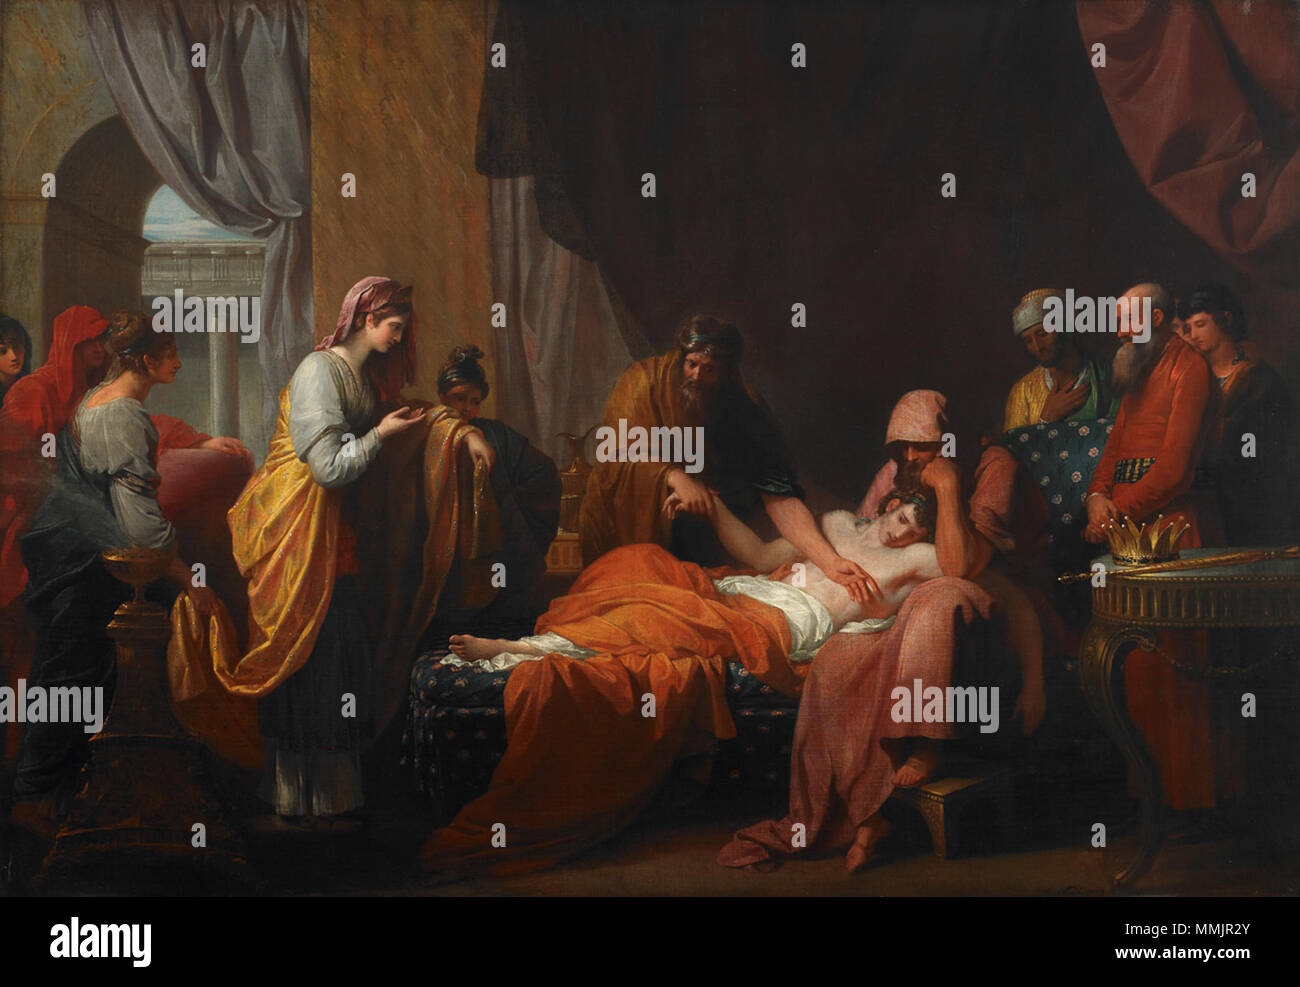 .  English: Painting of the Greek tale of Erastistratus diagnosing Antiochus with unrequited love  Erasistratus the Physician Discovers the Love of Antiochus for Stratonice. 1772. Erasistratus the Physician Discovers the Love of Antiochus for Stratonice - Stock Image